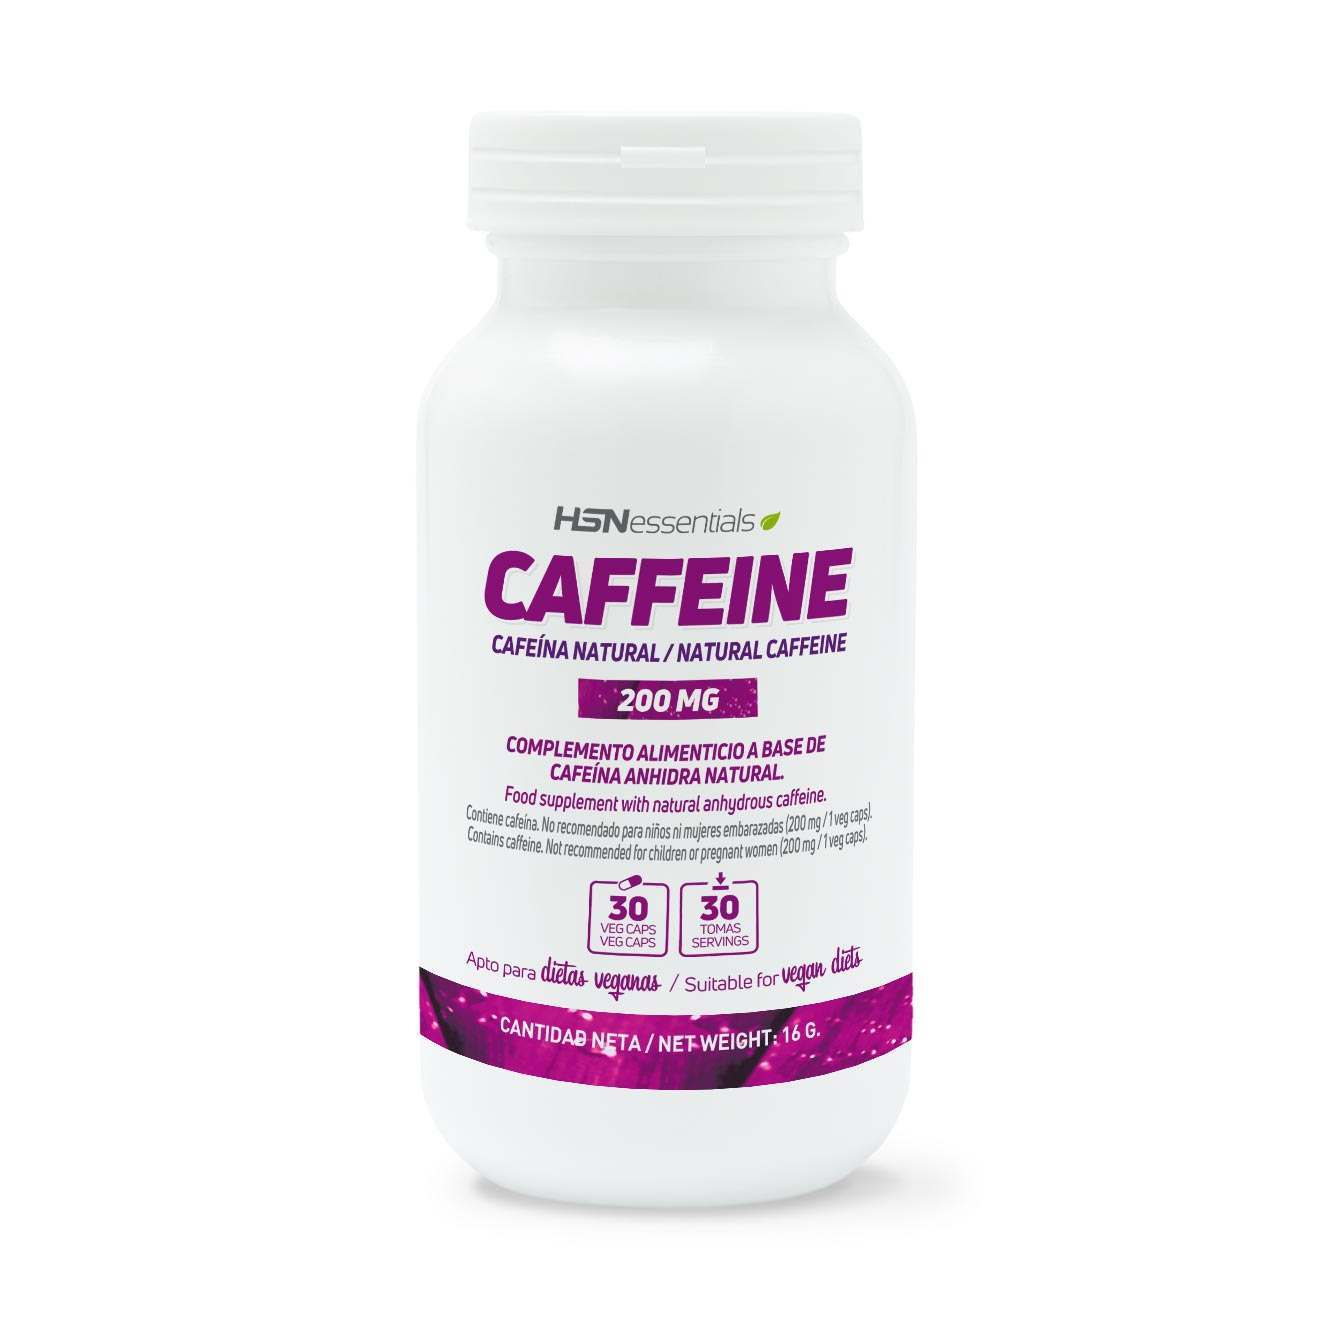 CAFEÍNA NATURAL 200mg - 30 veg caps